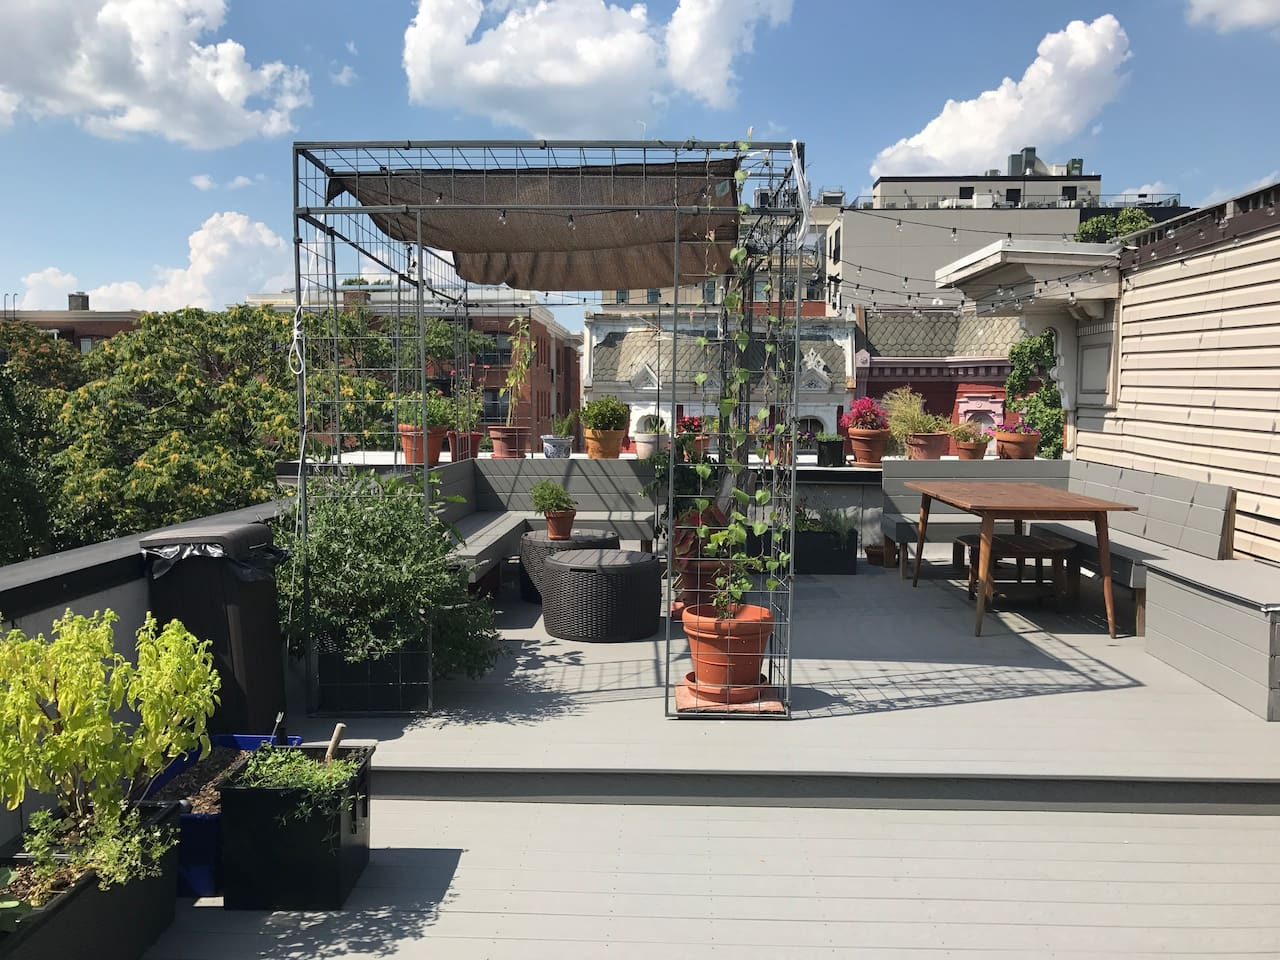 private 600 sq ft. rooftop deck with garden